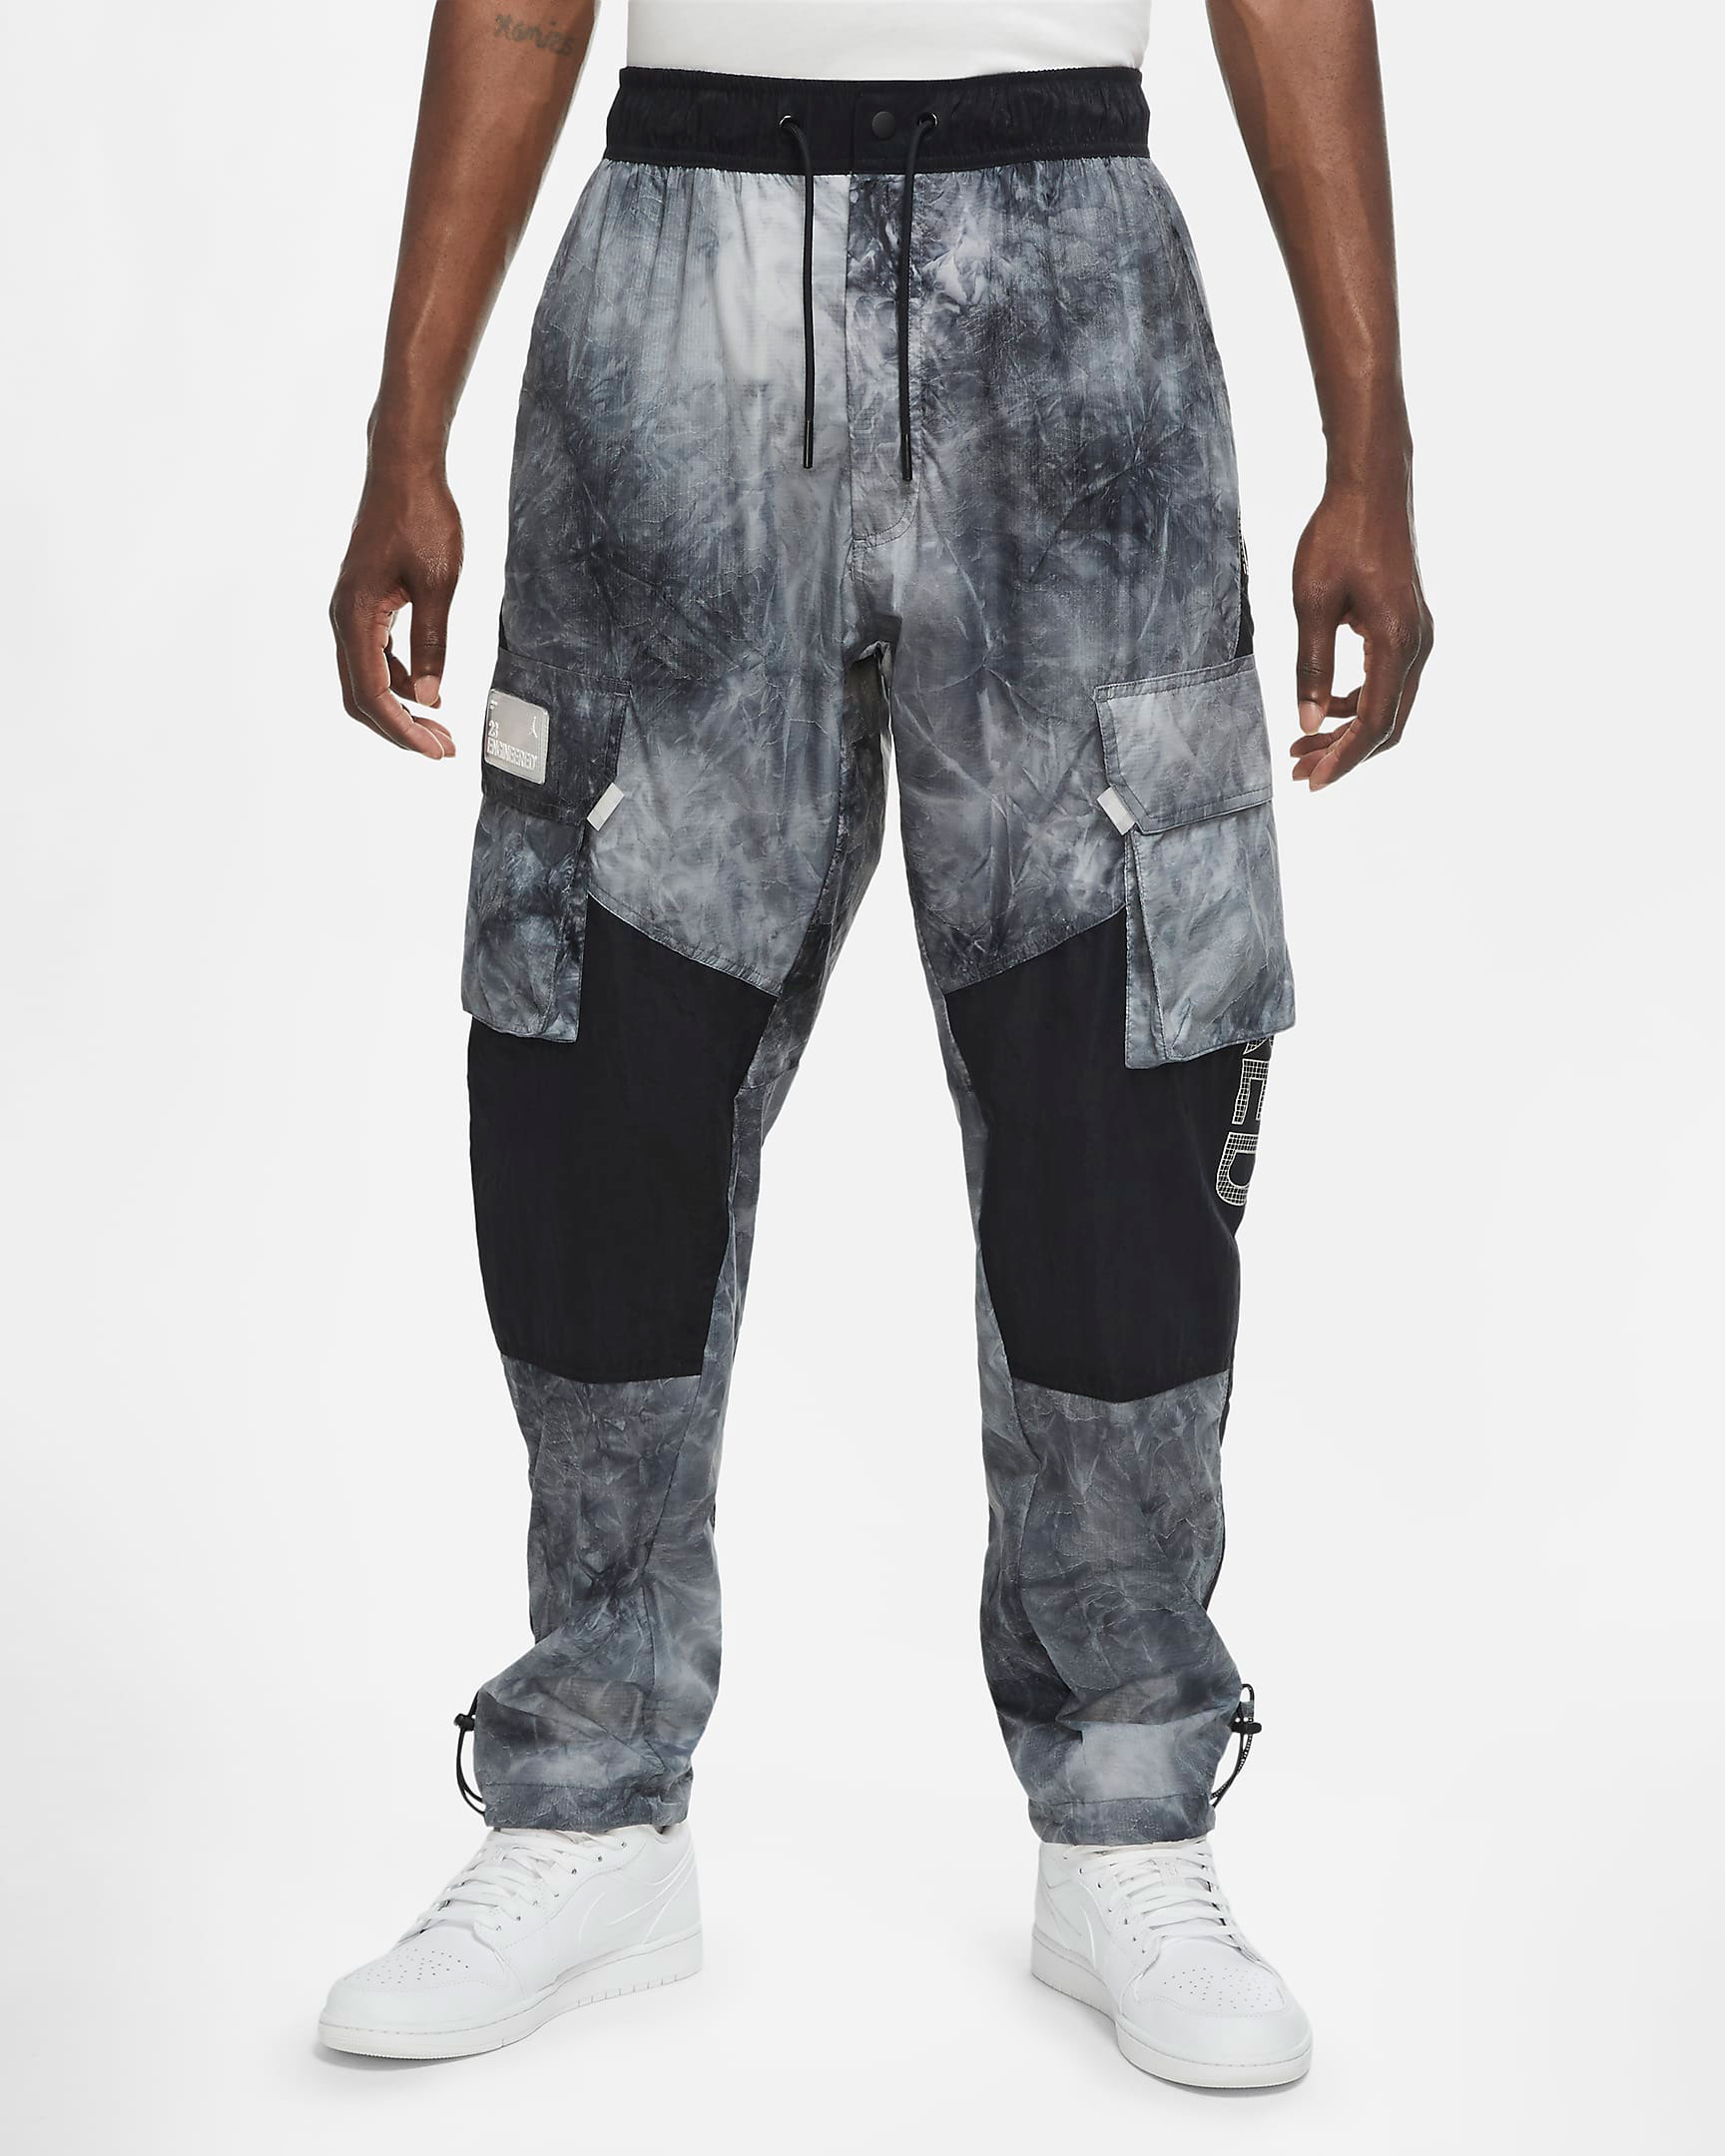 air-jordan-11-jubilee-cargo-pants-match-1